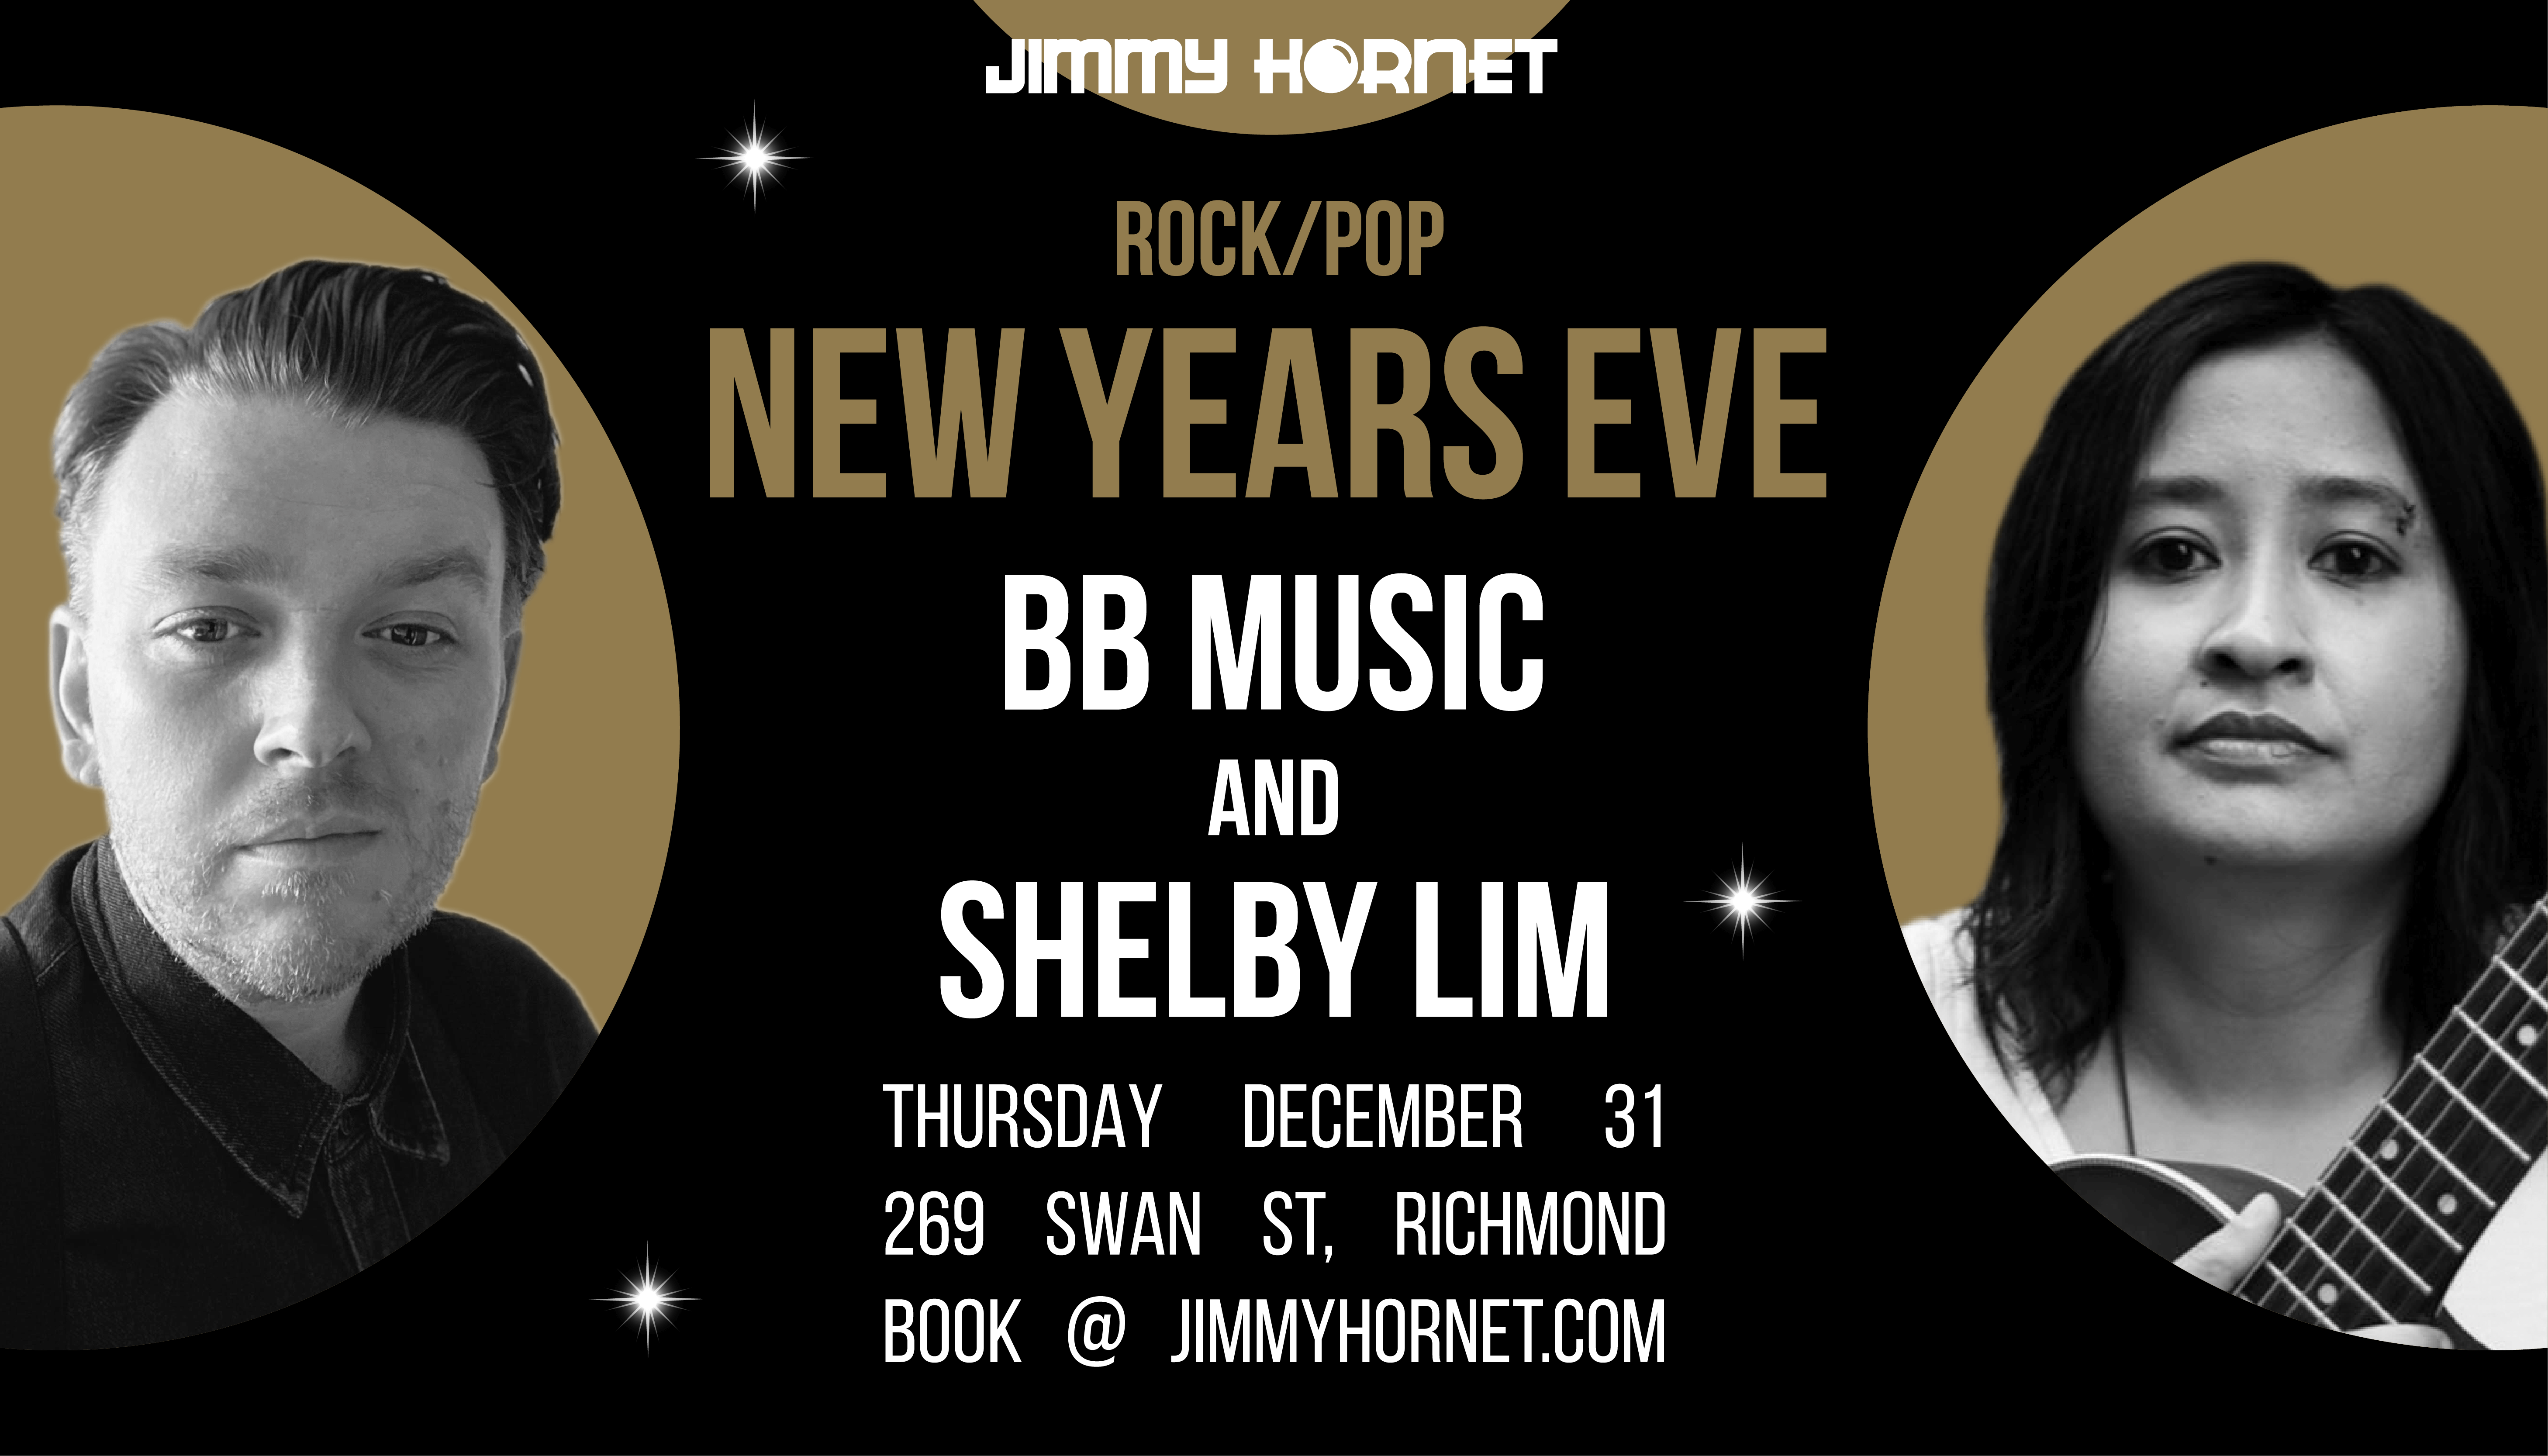 New Years Eve at Jimmy Hornet